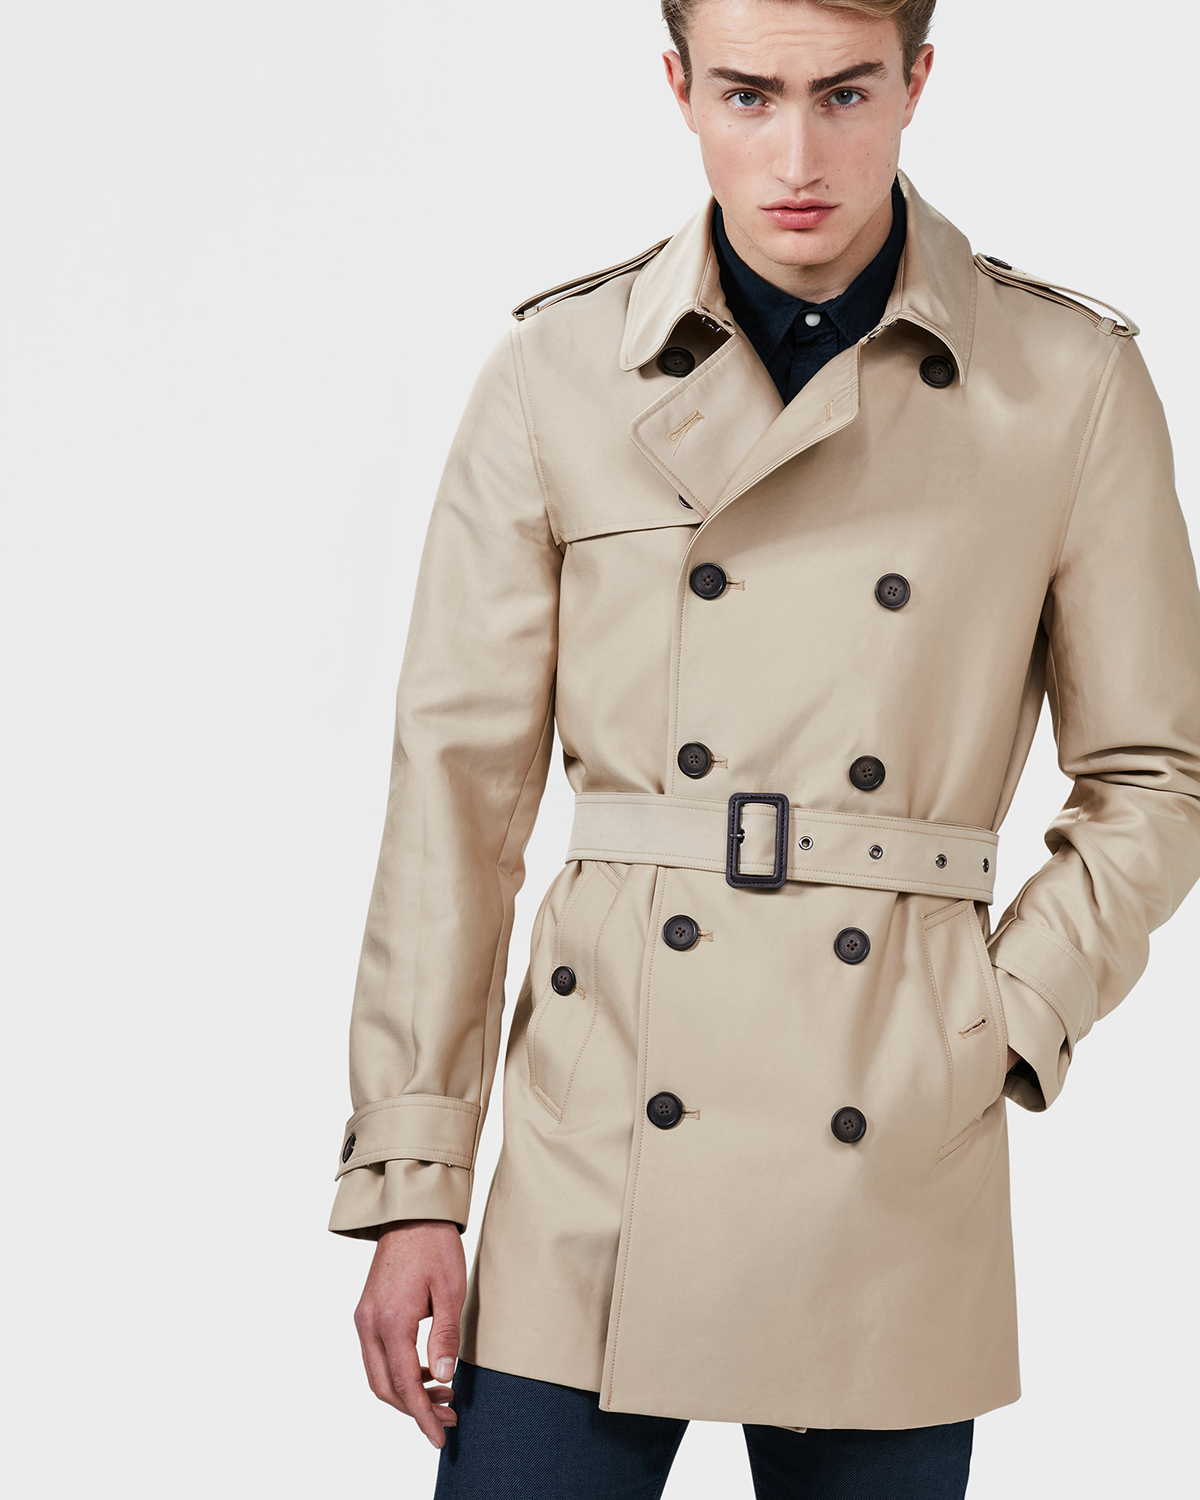 Buy low price, high quality double breasted trenchcoat with worldwide shipping on shopnow-bqimqrqk.tk